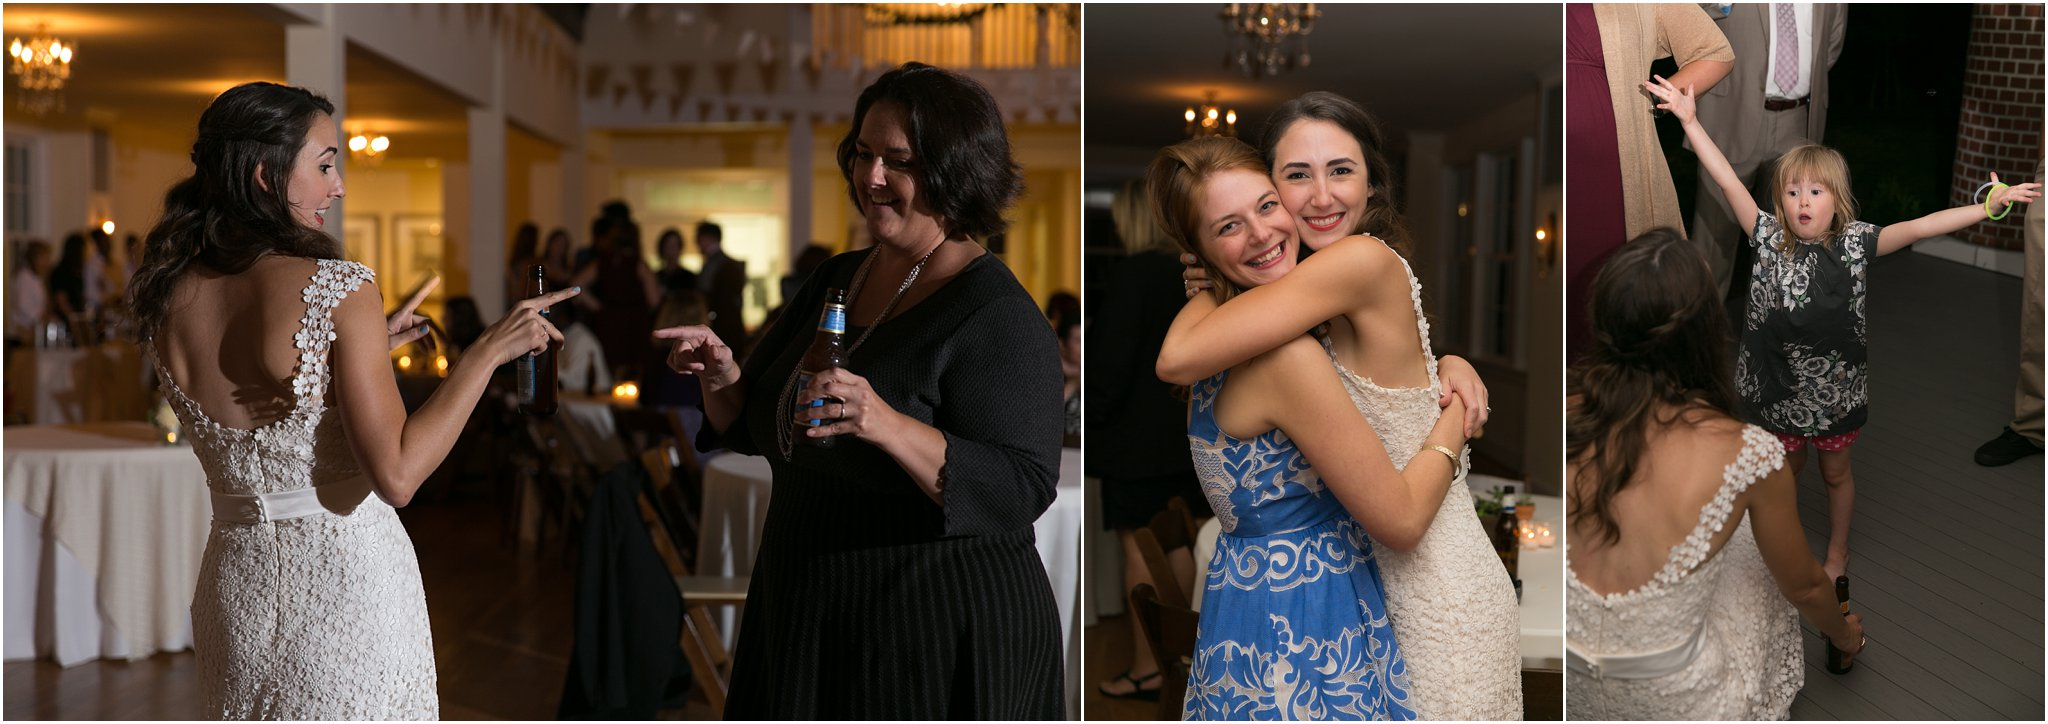 jessica_ryan_photography_womans_club_of_portsmouth_virginia_wedding_portsmouth_candid4_1151